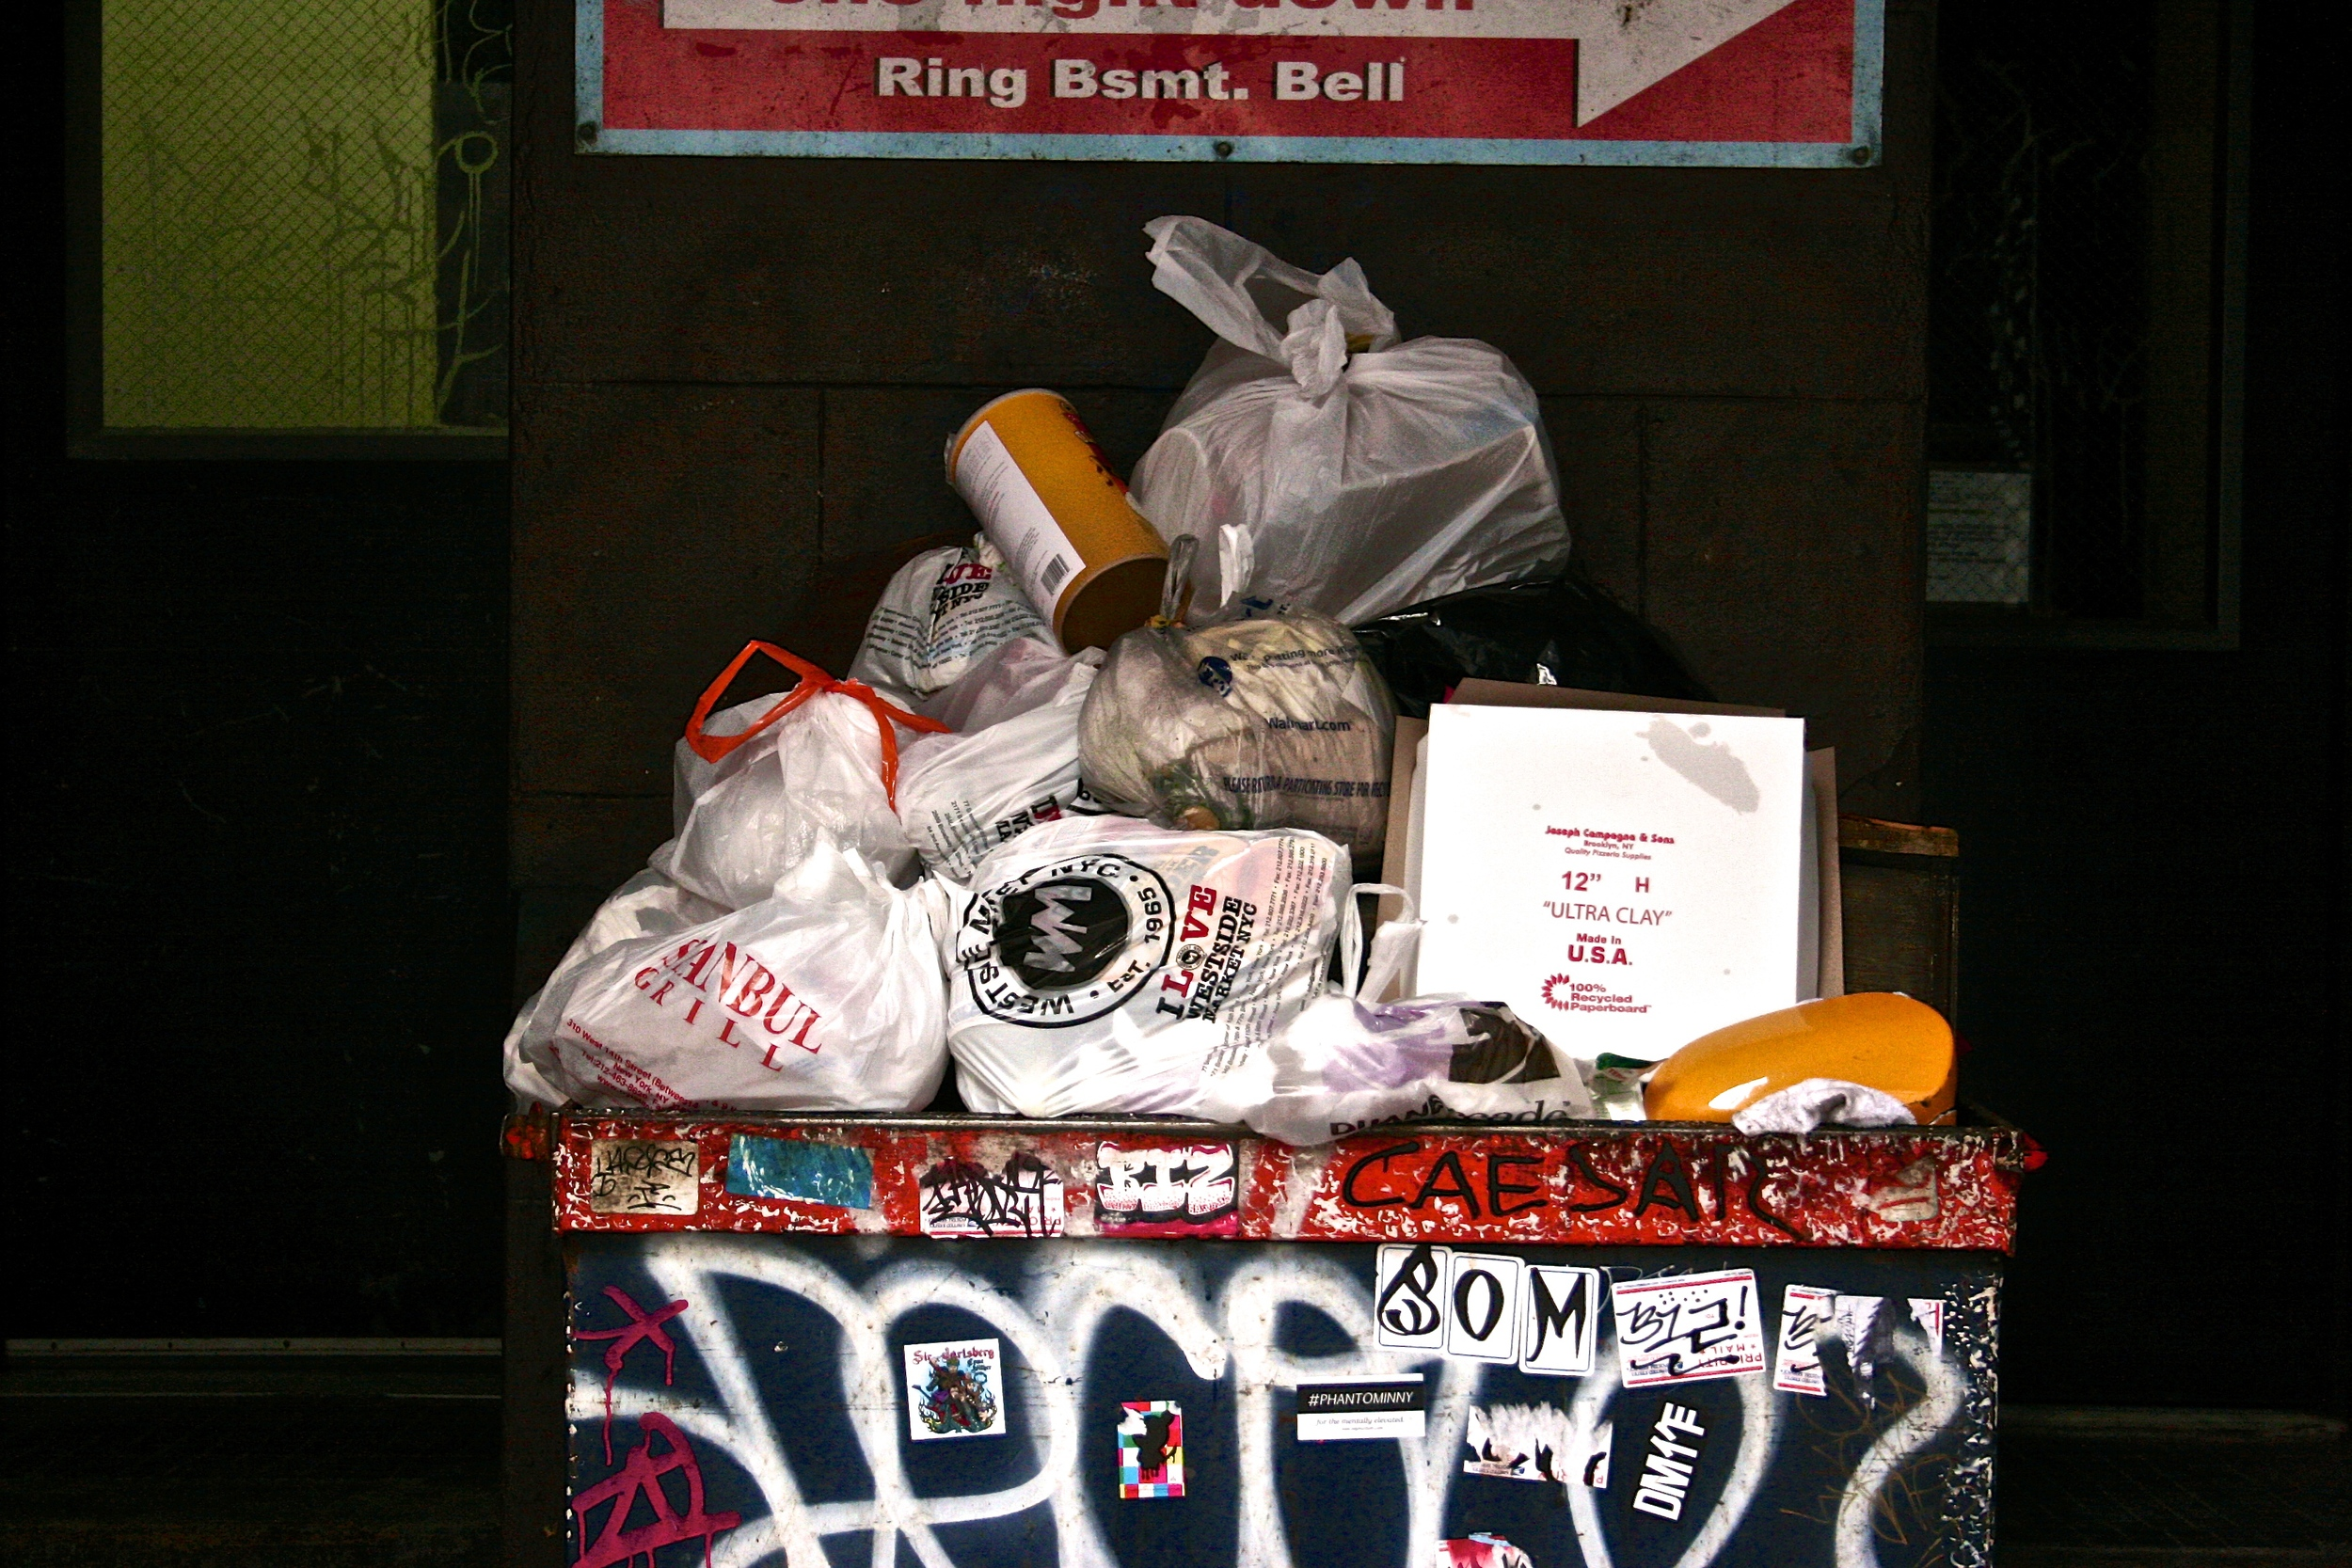 trash-pile-in-nyc.jpg